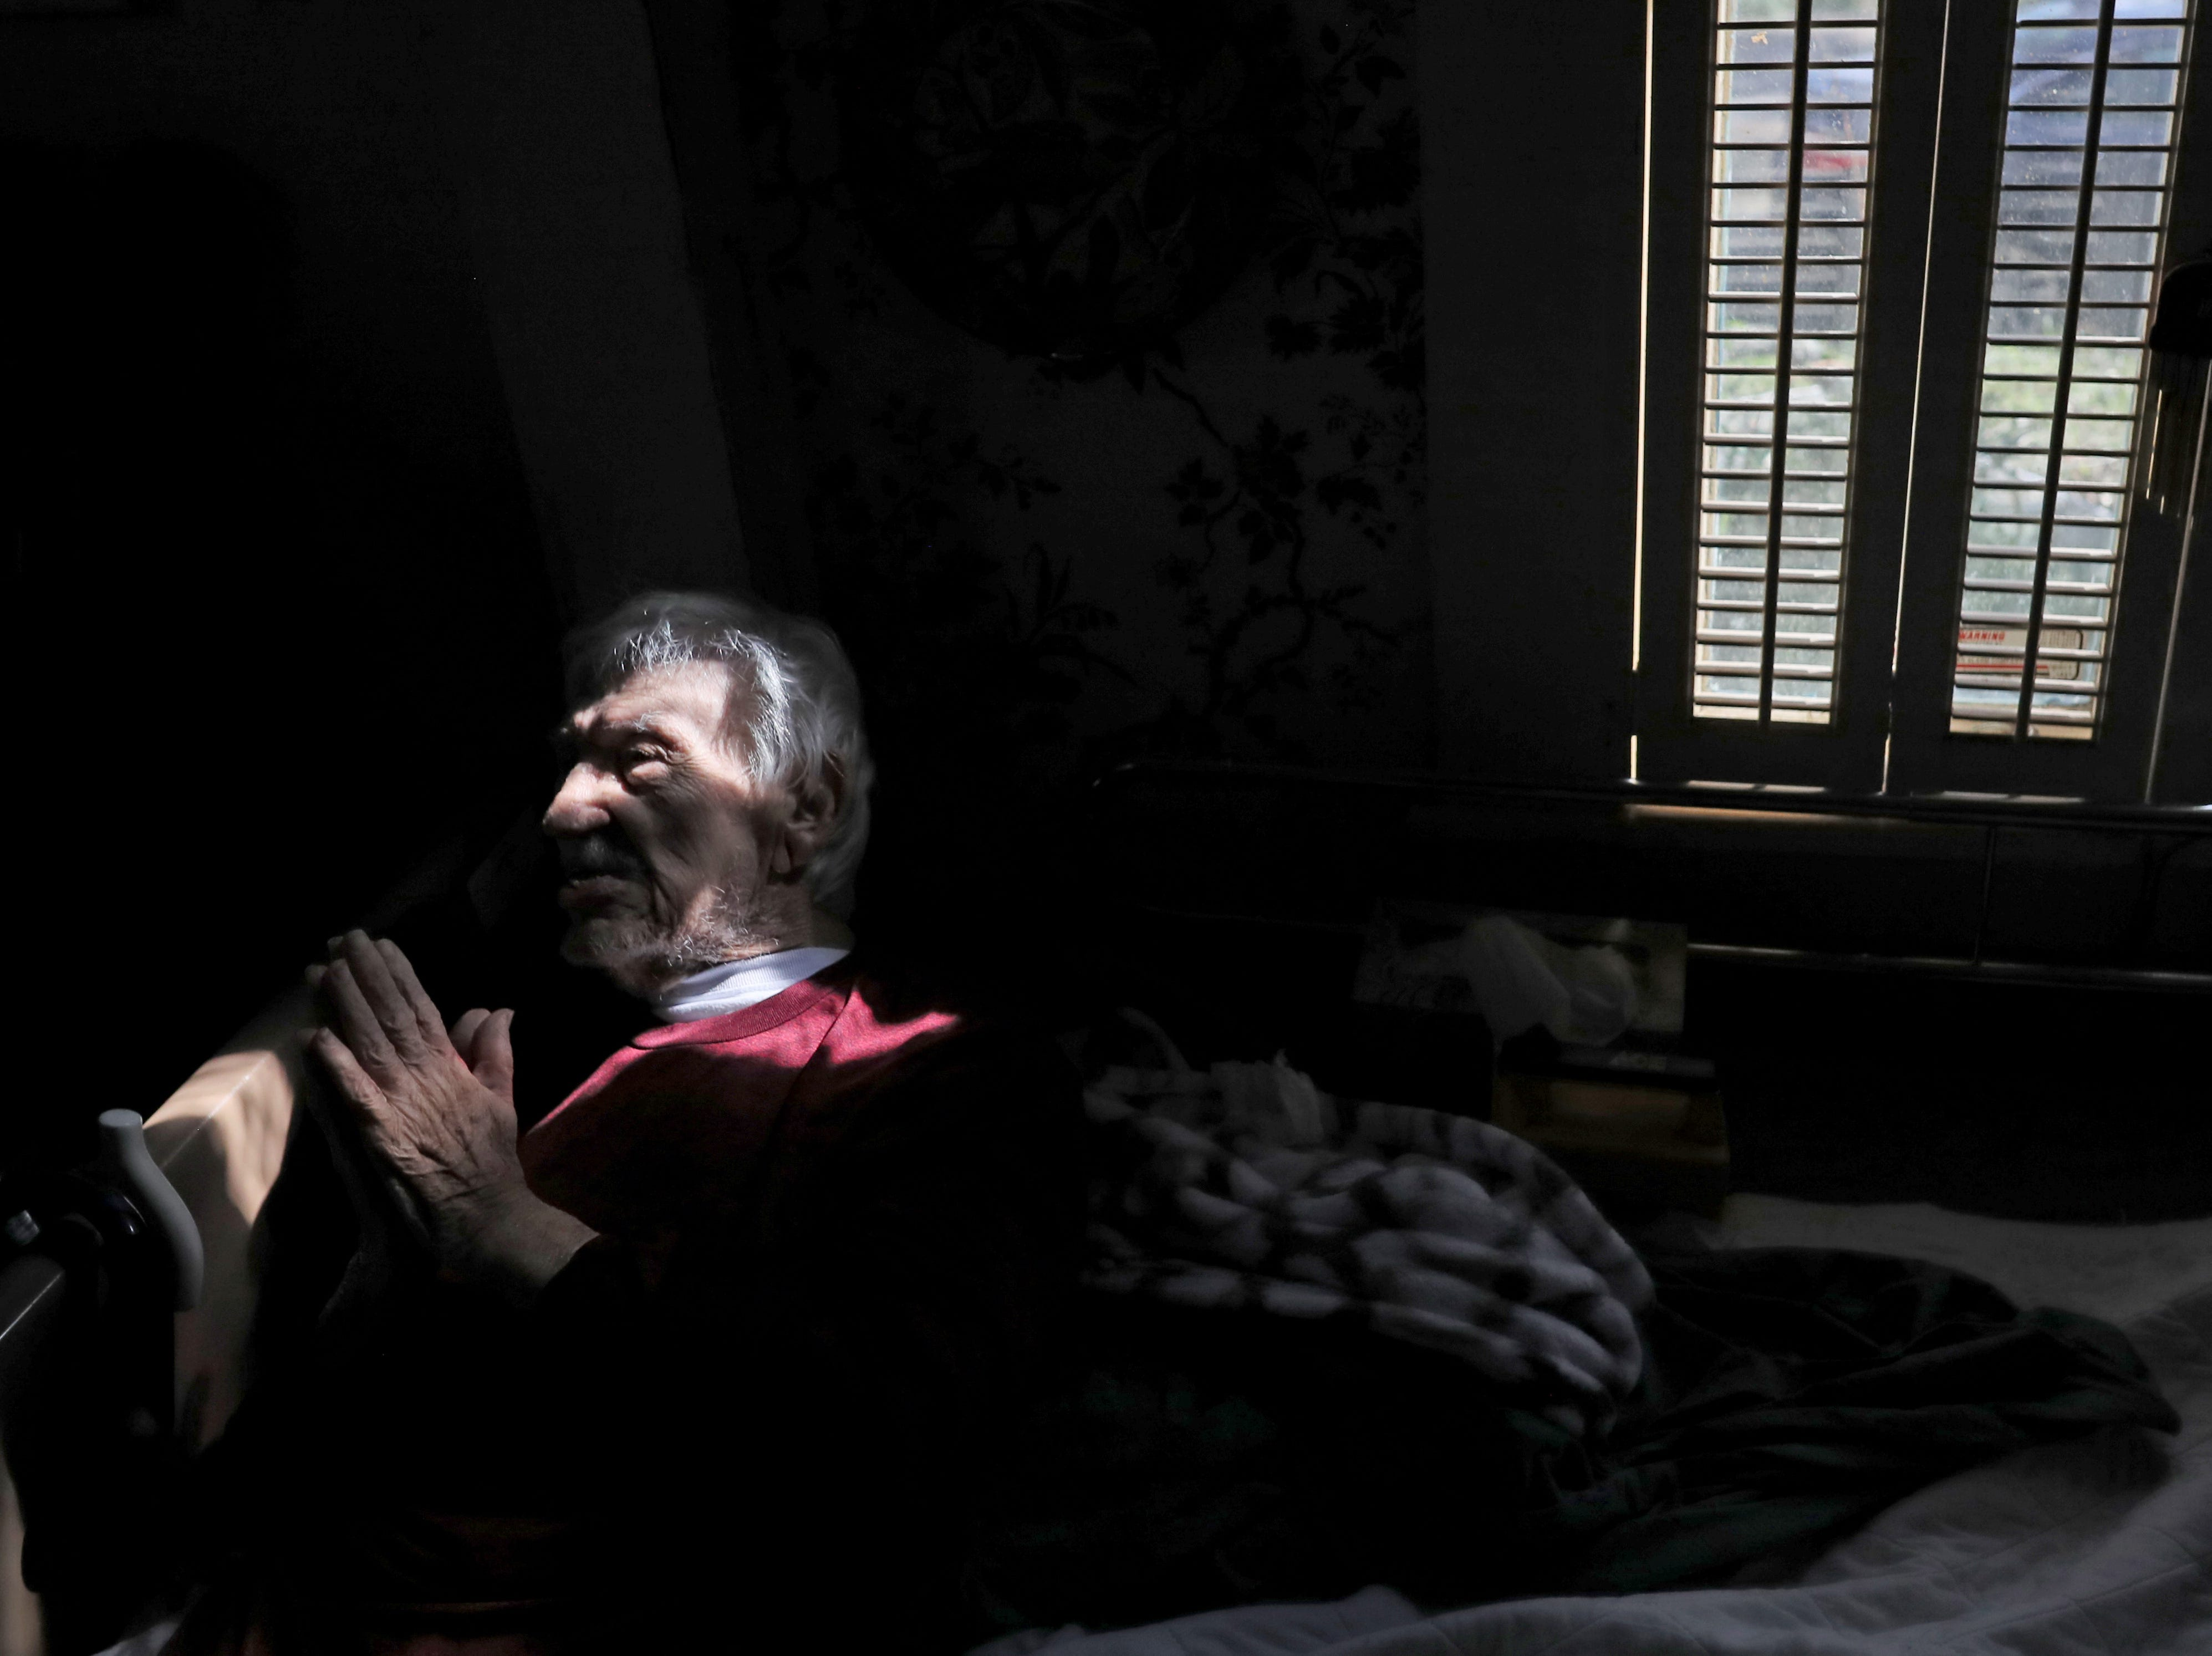 Billy Bassett King, 92, lays in the living room of his Chattahoochee home on Monday, Oct. 15, 2018. King decided to ride out Hurricane Michael inside, as trees came crashing around his house, crushing the front porch.